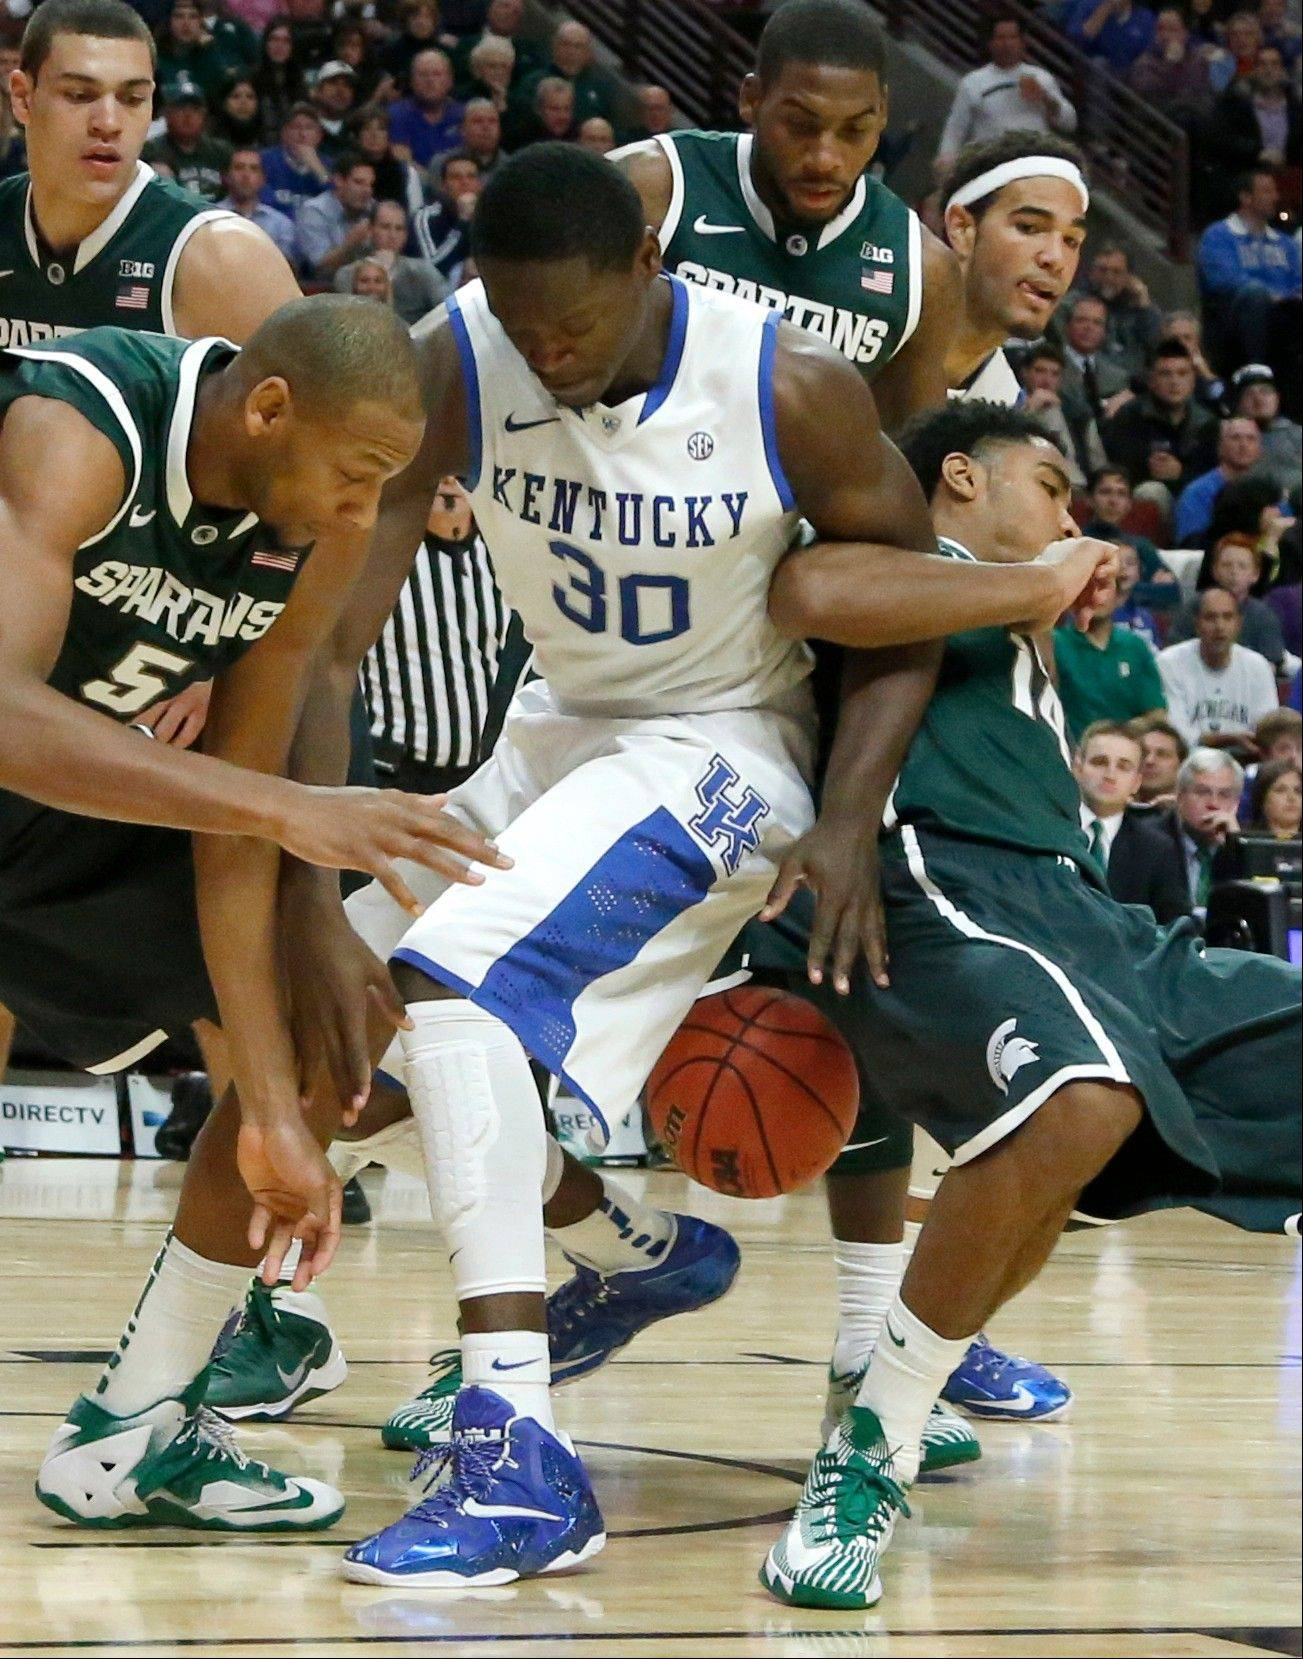 Michigan State center Adreian Payne (5), Kentucky forward Julius Randle (30) and Michigan State guard Gary Harris, right, struggle for a loose ball during the first half of an NCAA college basketball game Tuesday, Nov. 12, 2013, in Chicago.